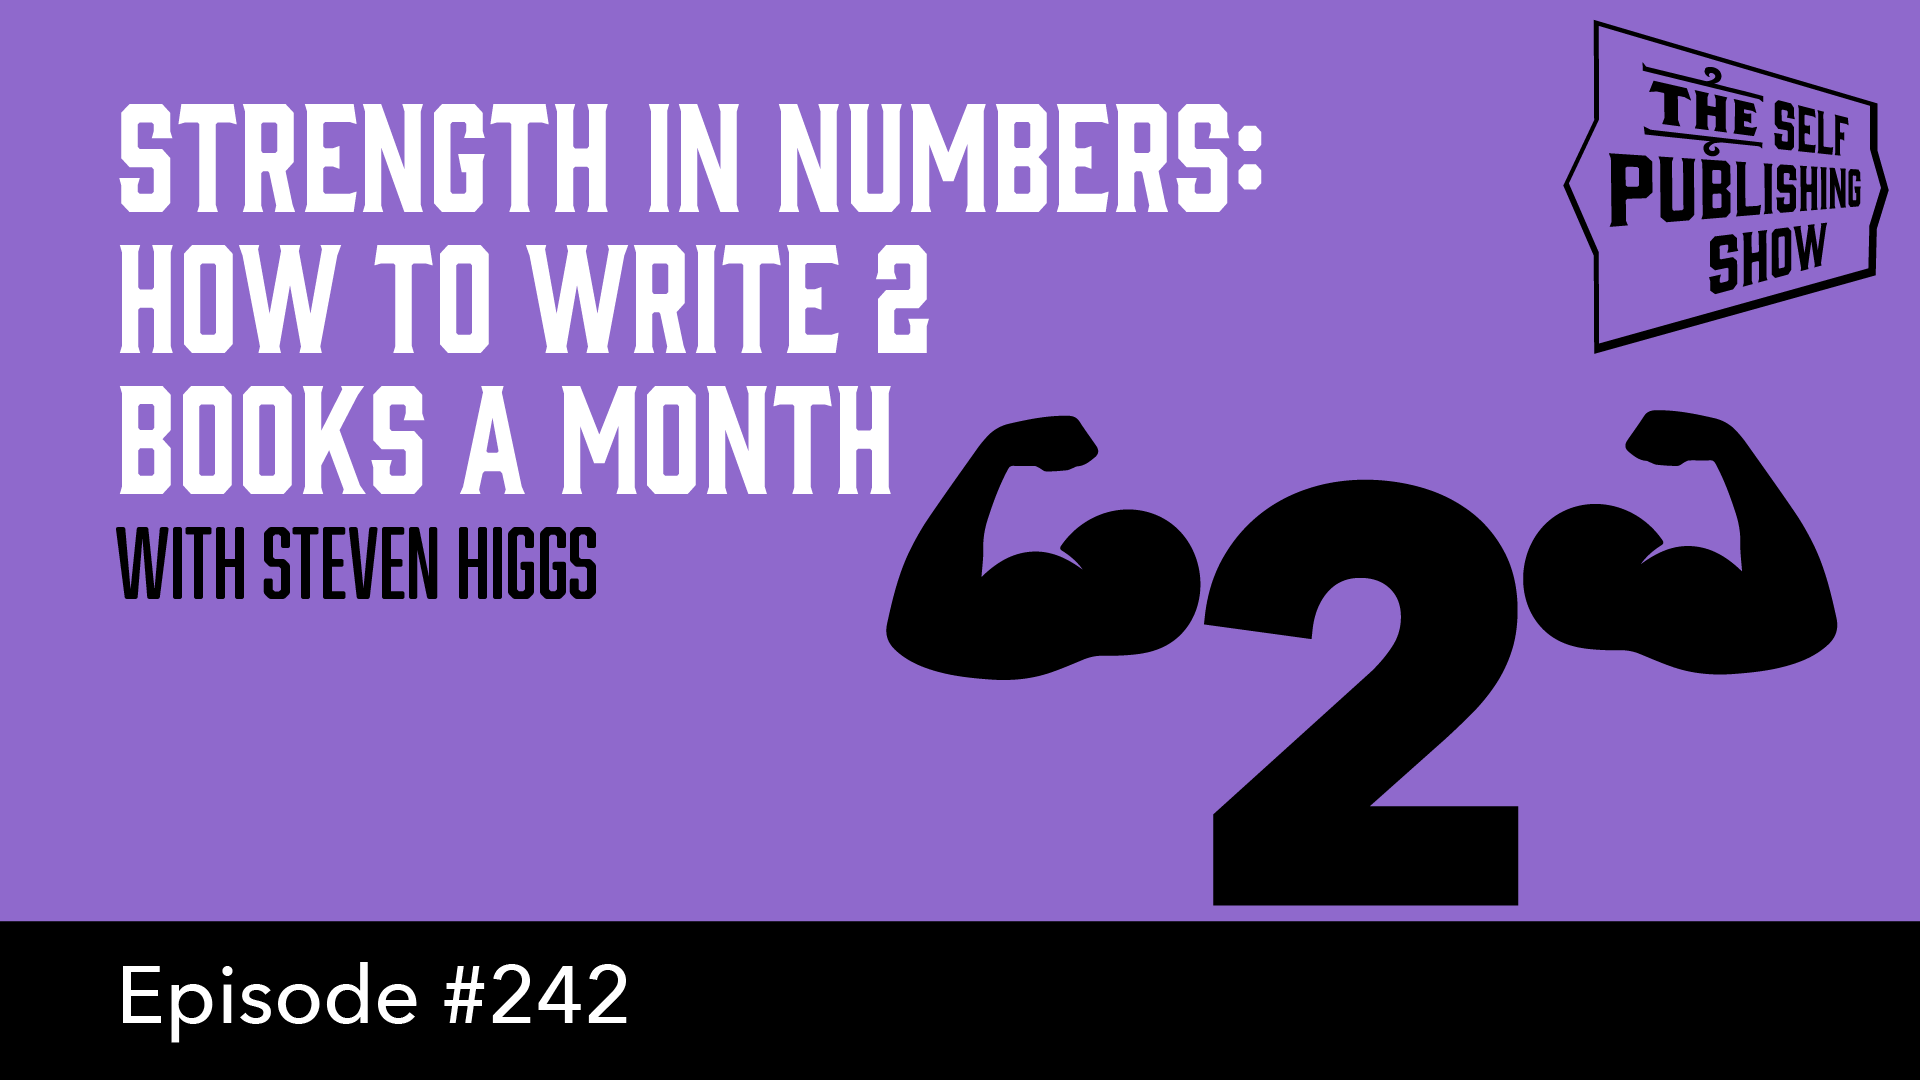 SPS-242: Strength in Numbers: How to Write 2 Books a Month – with Steven Higgs